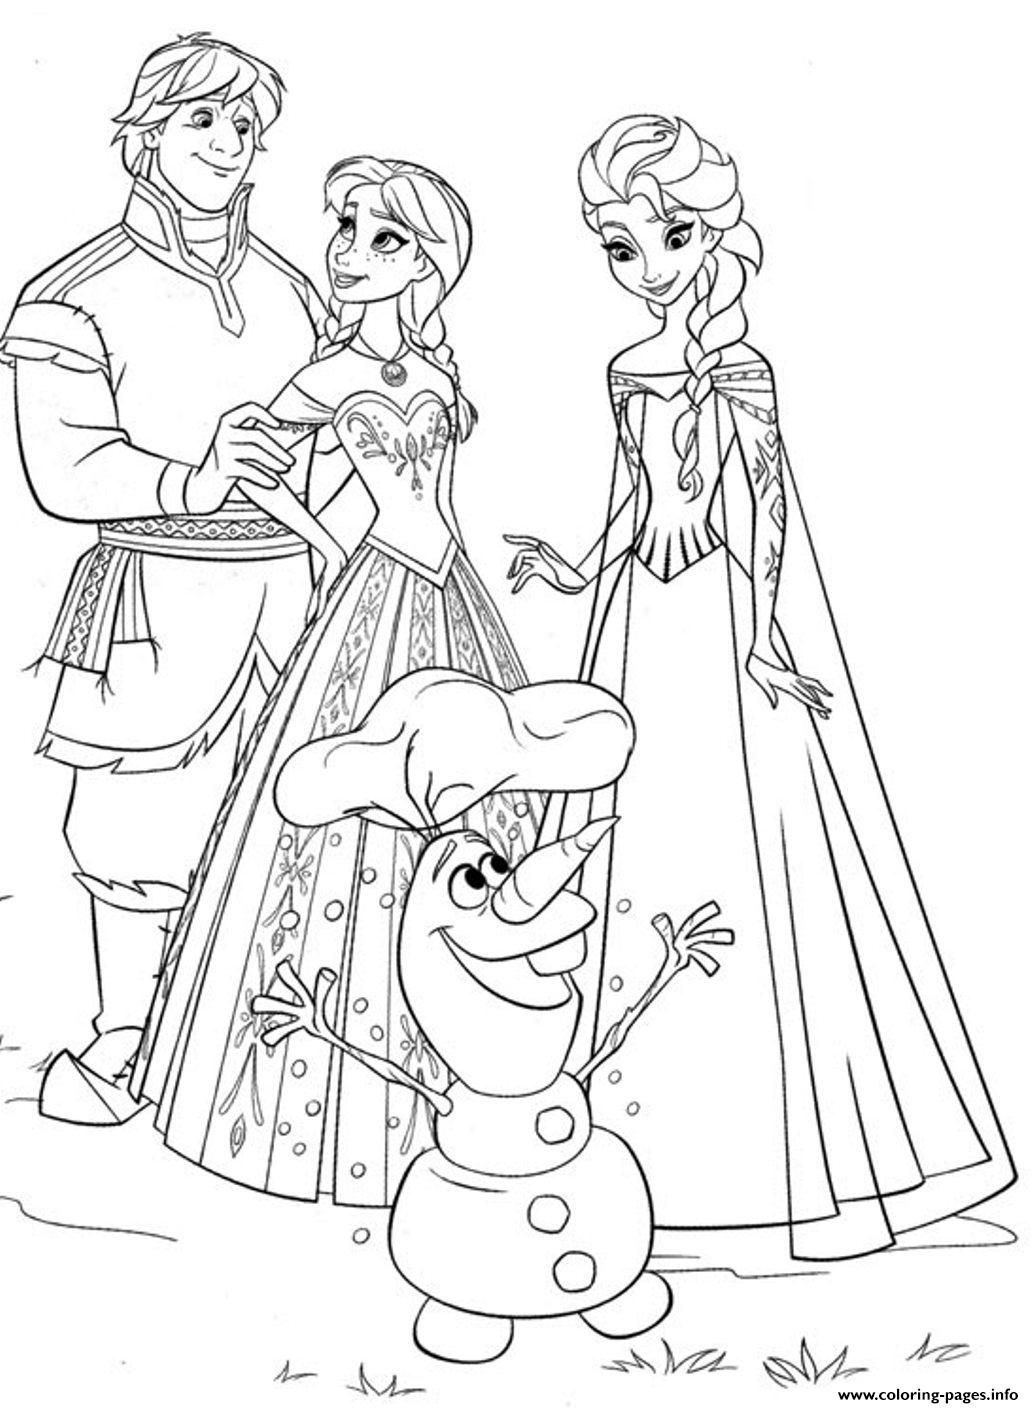 Print Frozen Family4eec Coloring Pages Kids Coloring Books Disney Coloring Pages Frozen Coloring Pages